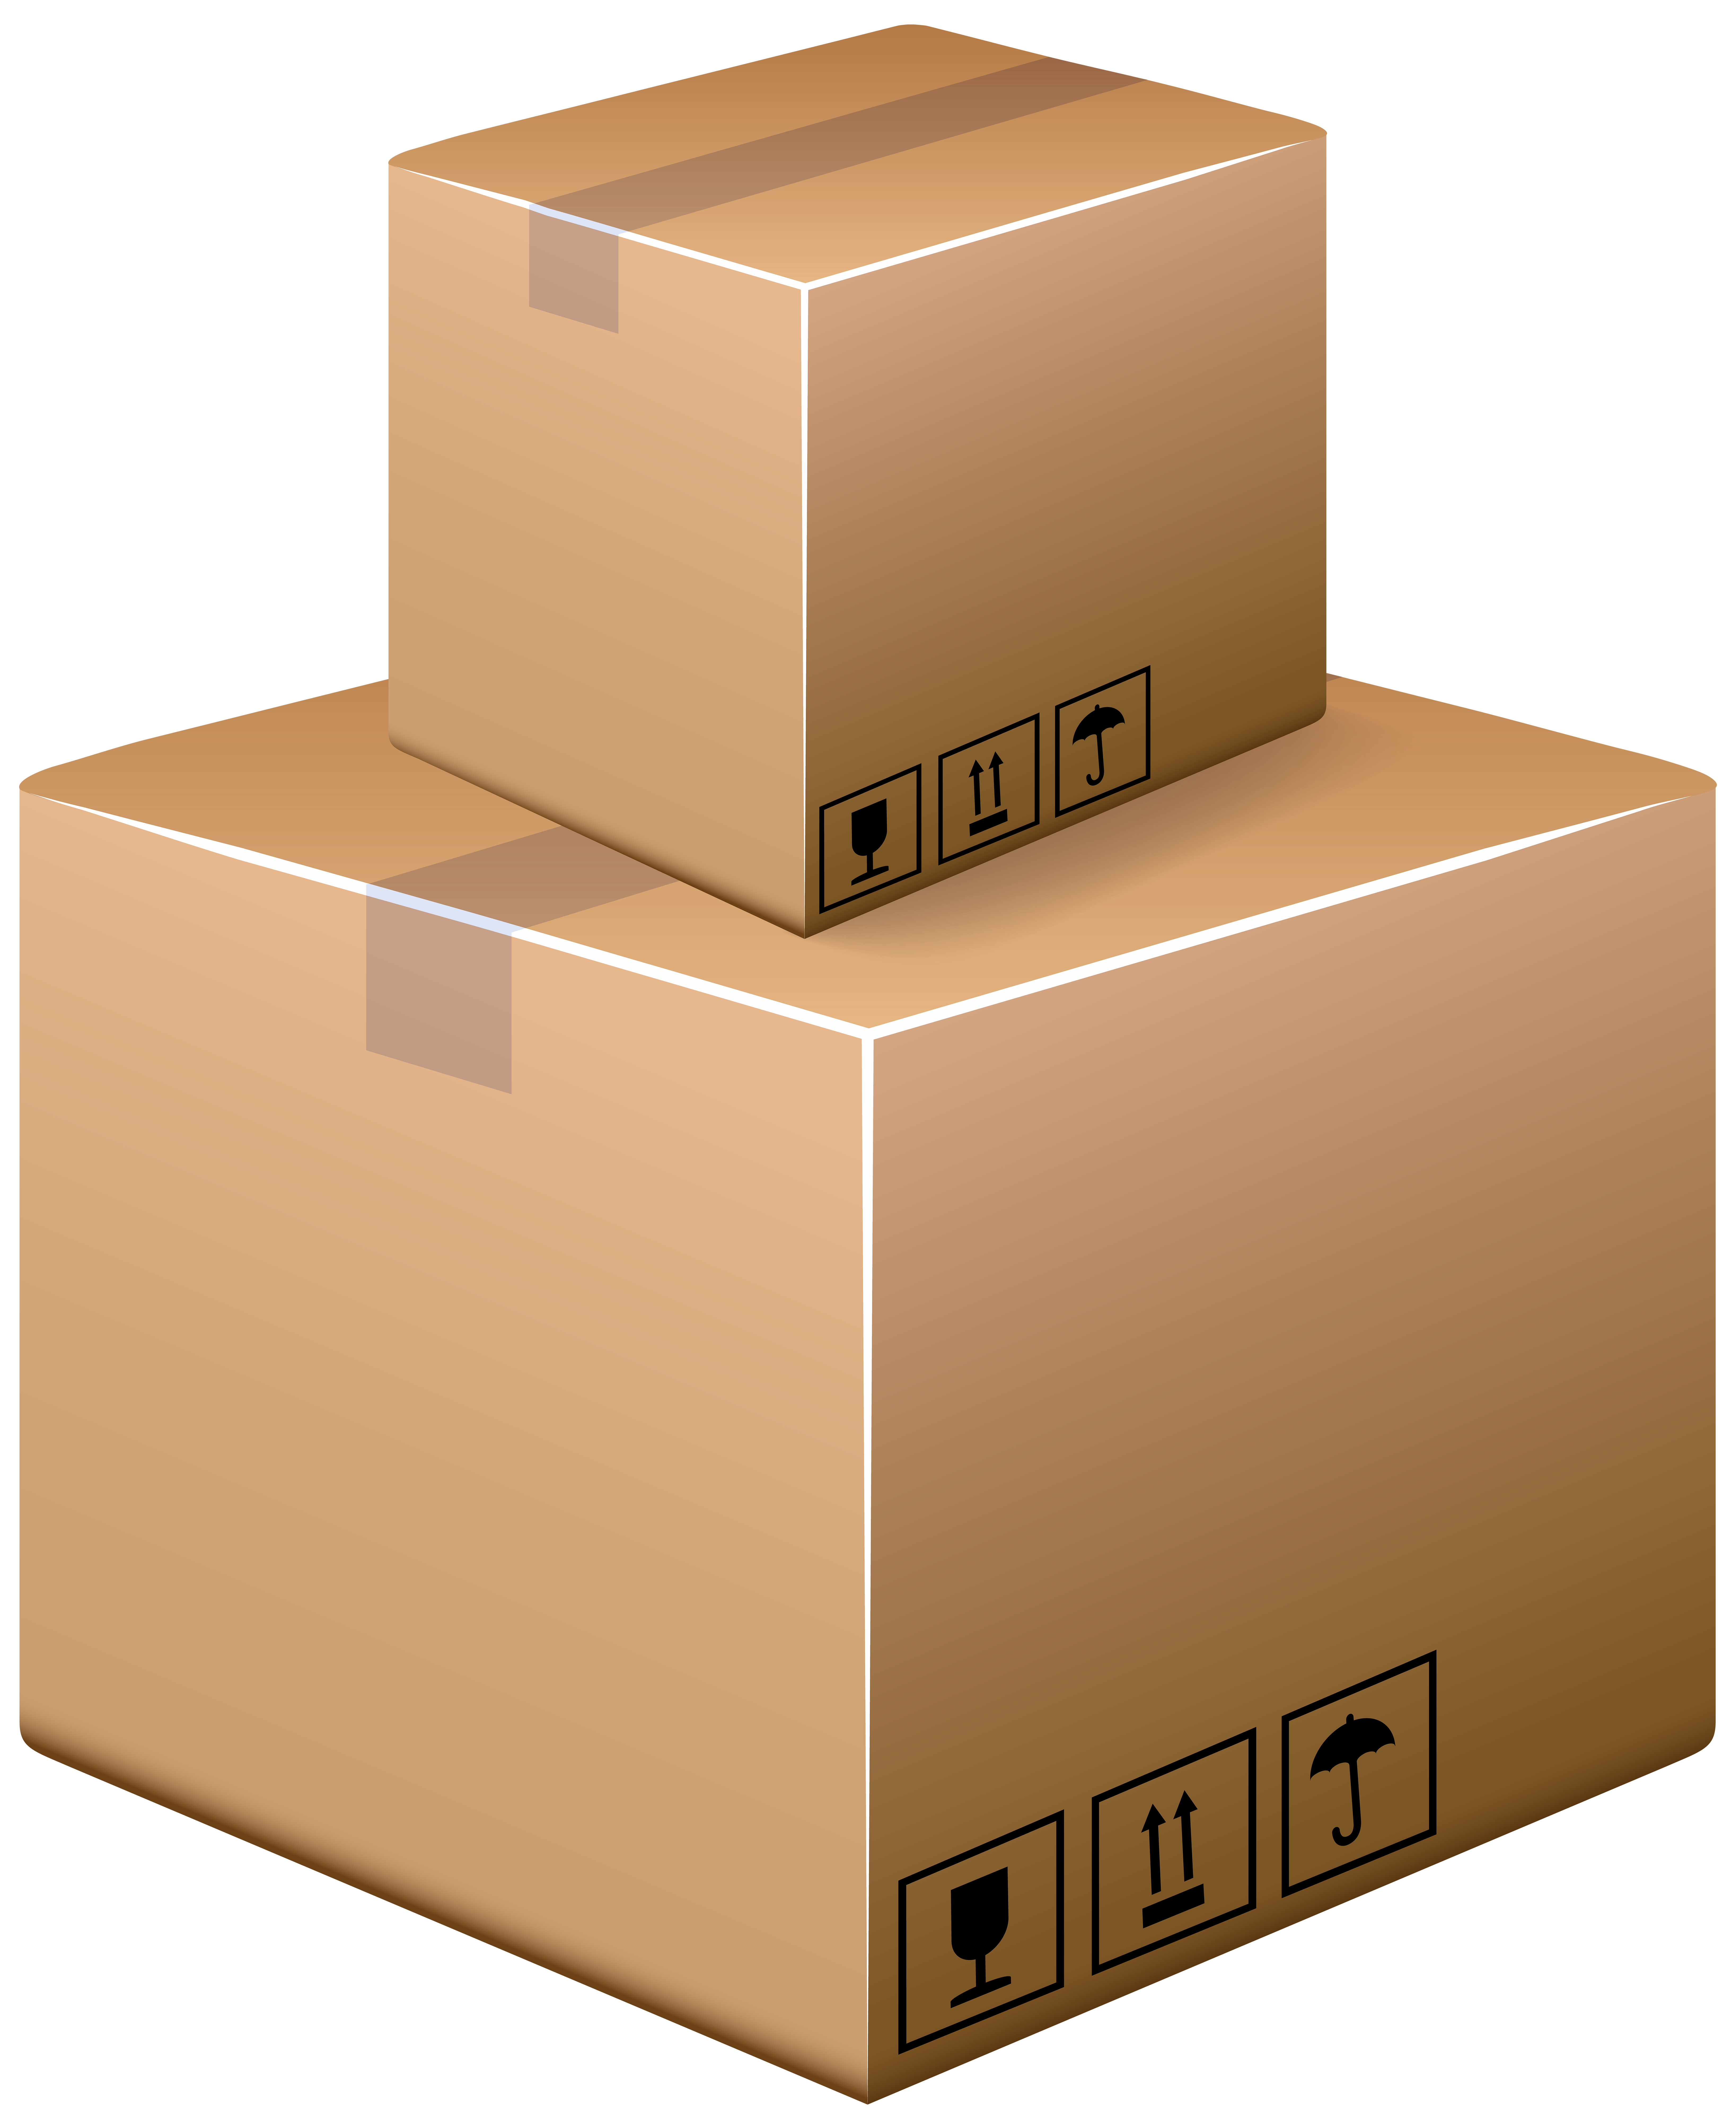 Clipart boxes image transparent library Cardboard Boxes PNG Clip Art - Best WEB Clipart image transparent library